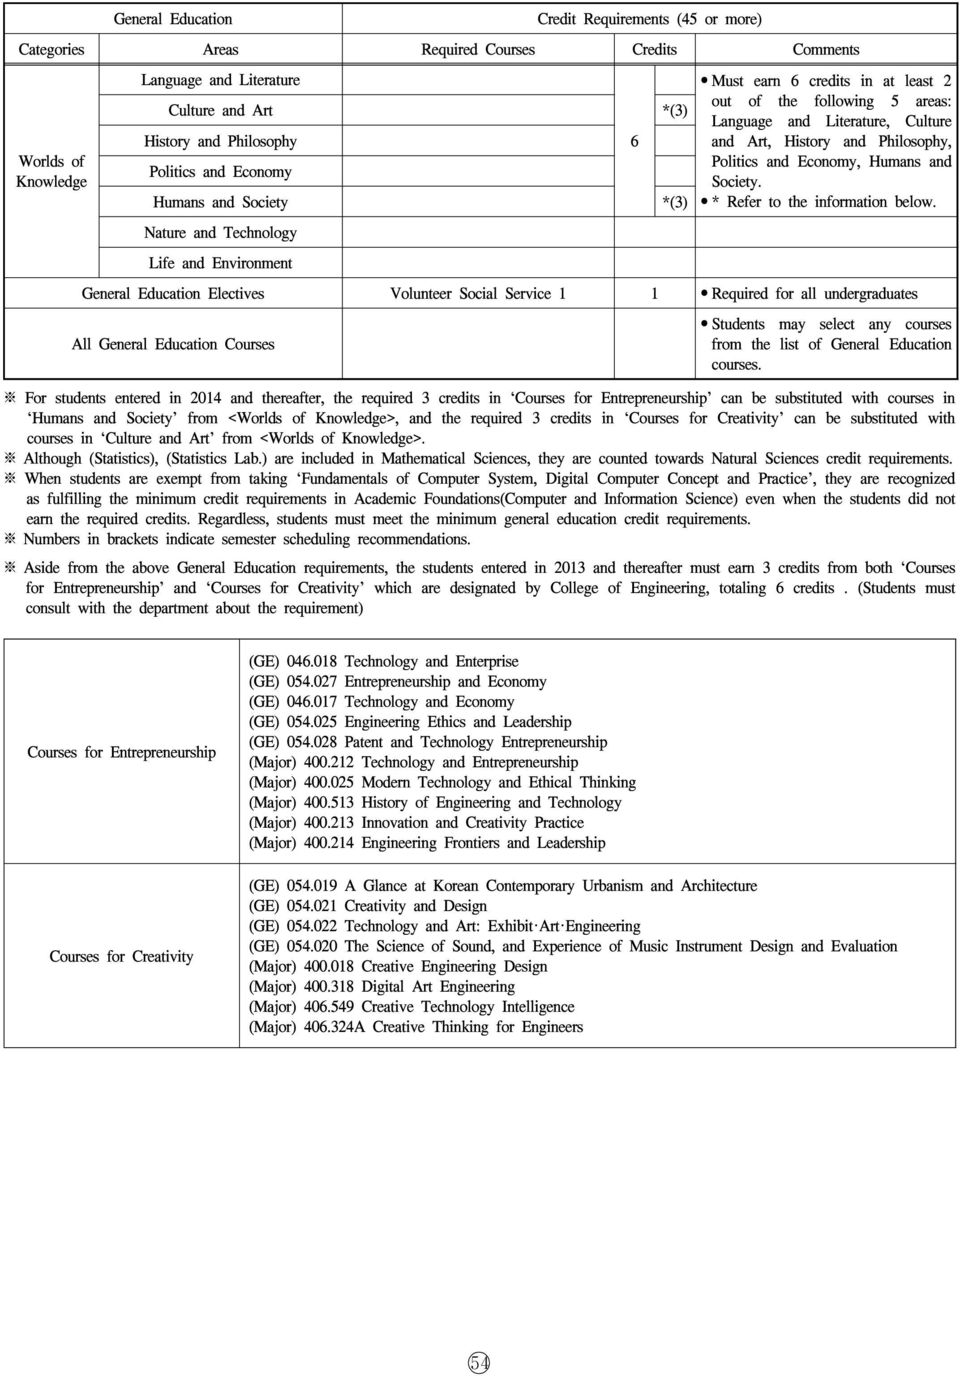 Electives Volunteer Social Service 1 1 Required for all undergraduates All Courses from the list of For students entered in 2014 and thereafter, the required credits in Courses for Entrepreneurship